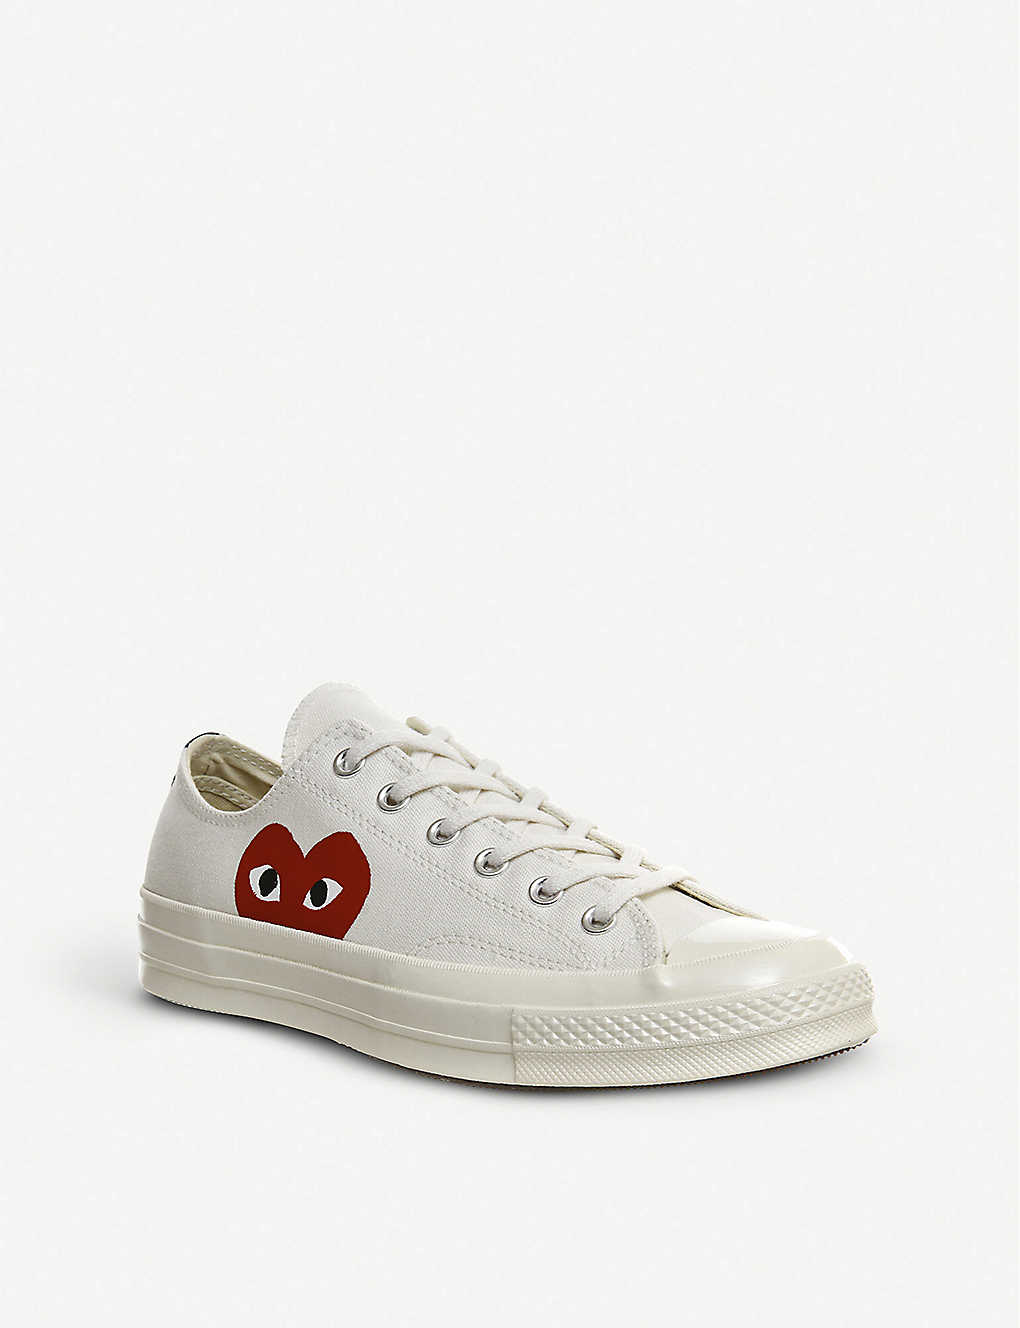 fff7f46795ee COMME DES GARCONS - Converse 70s x play cdg trainers